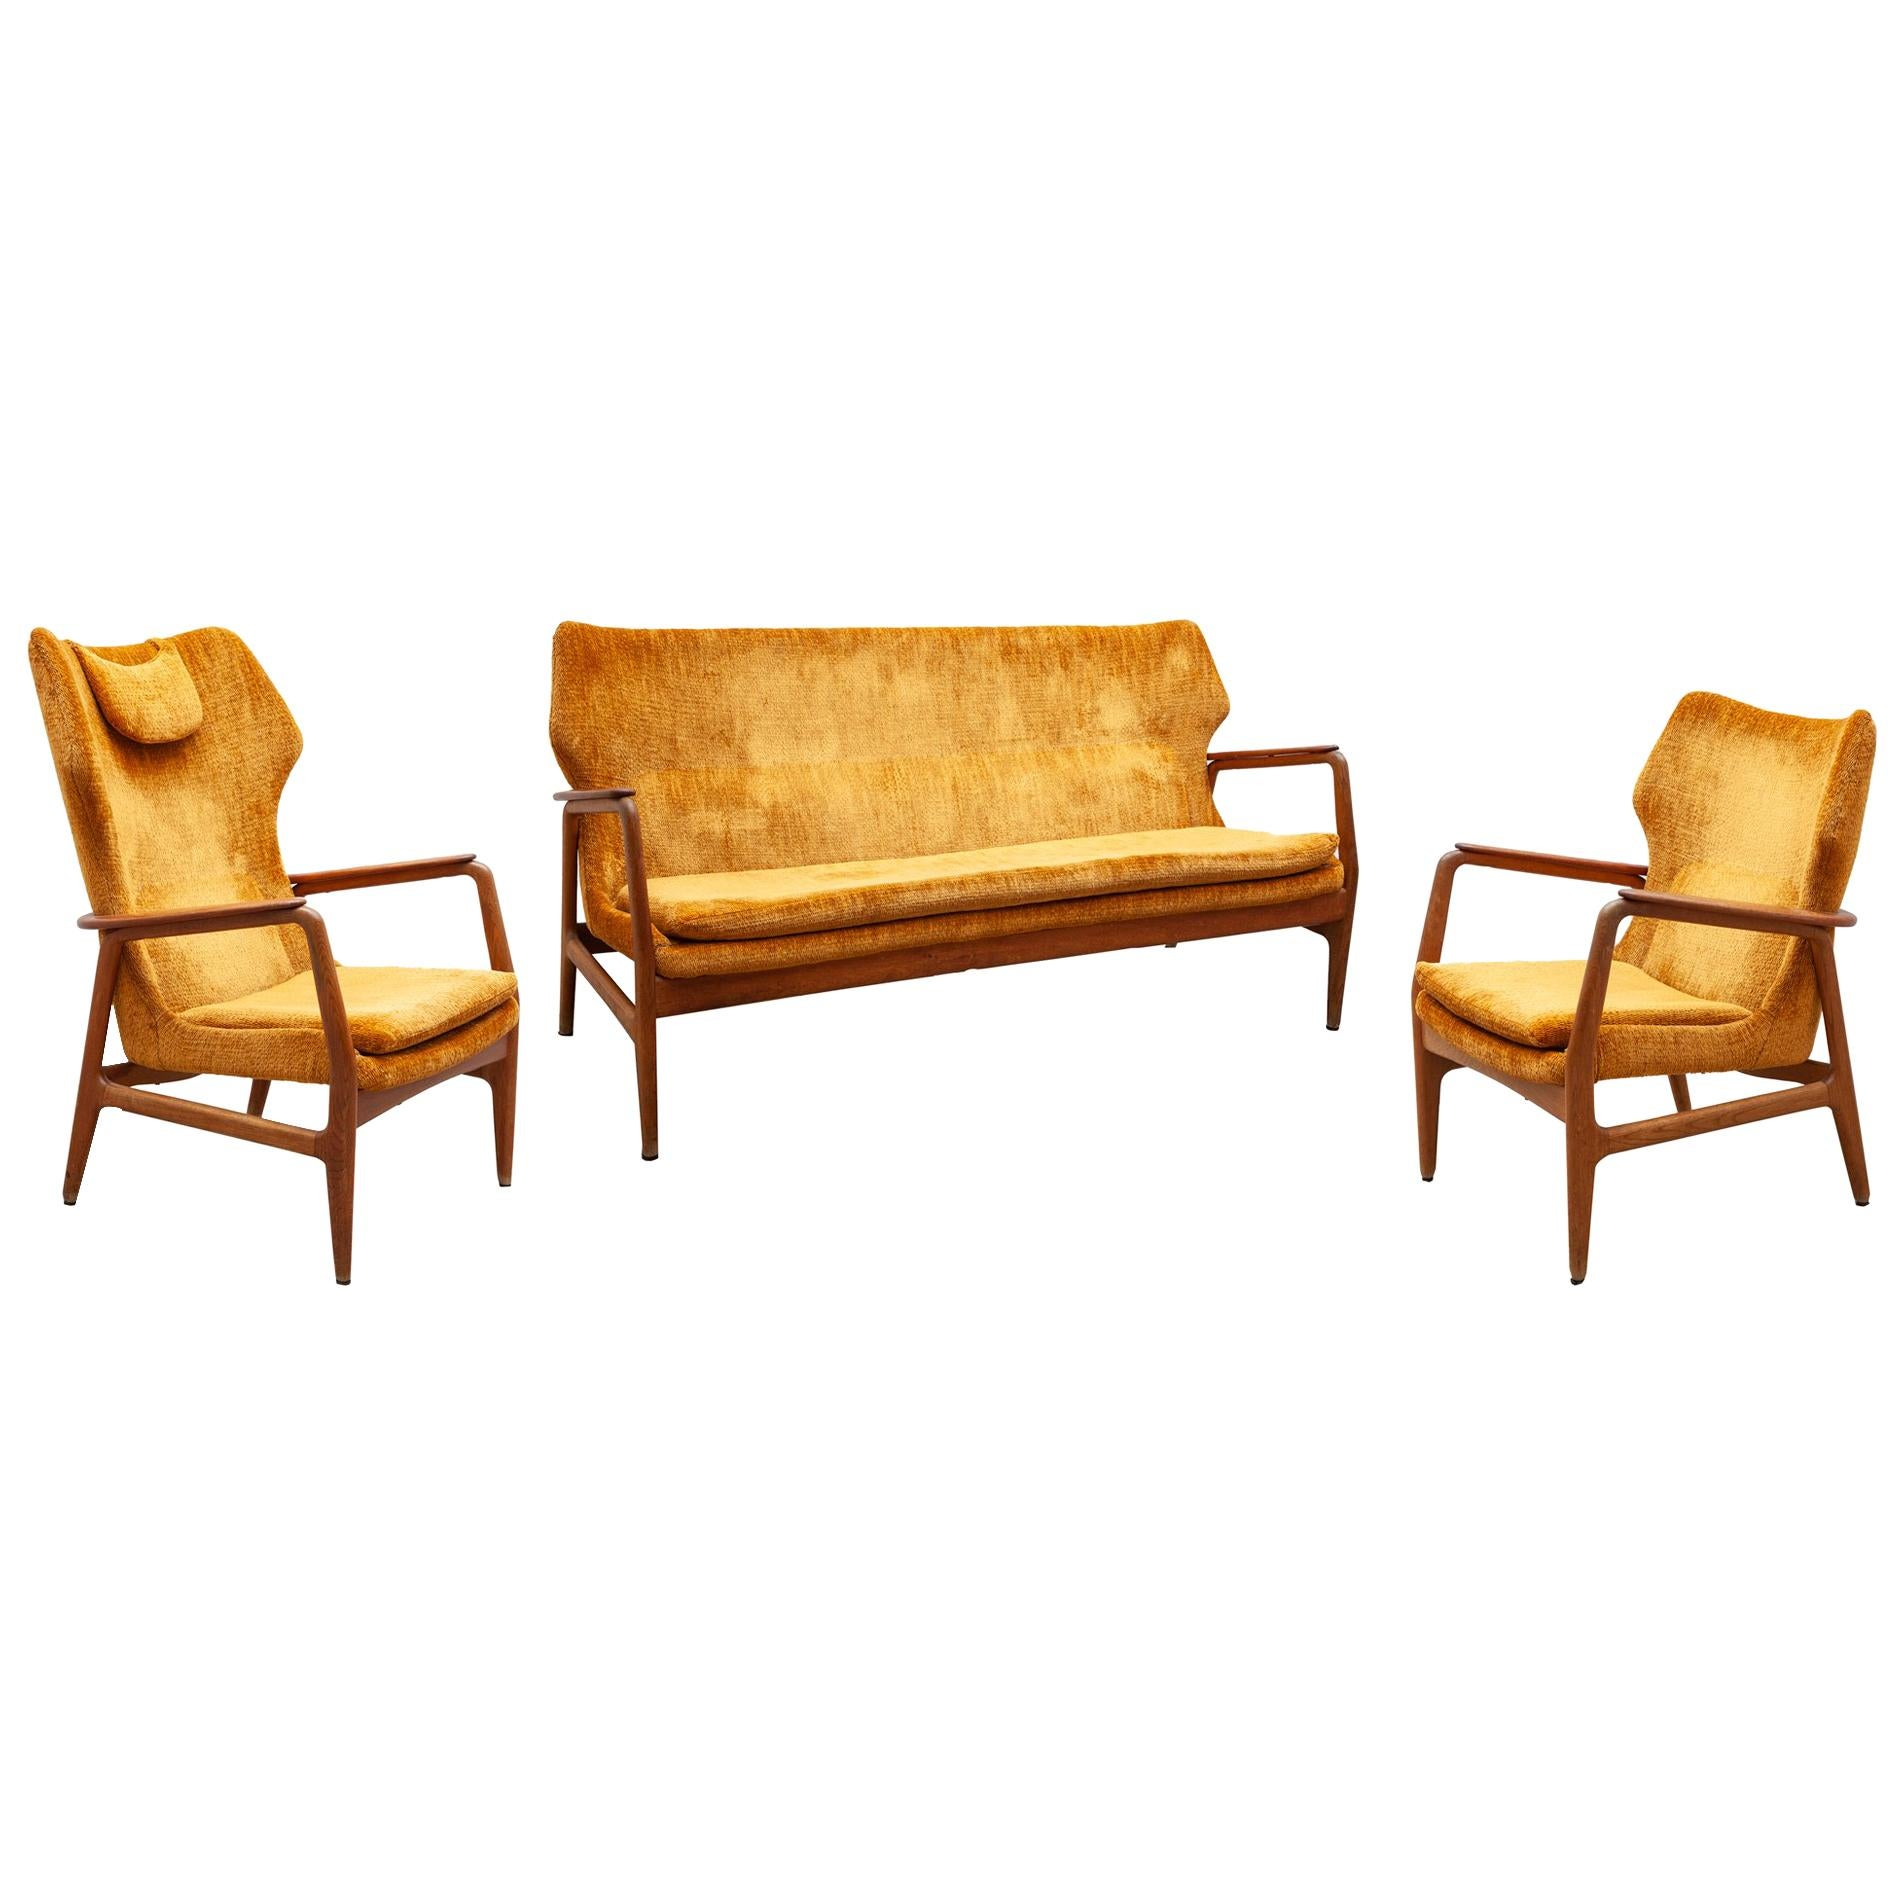 Lounge Chairs and Sofa by Aksel Bender Madsen for Bovenkamp, 1952